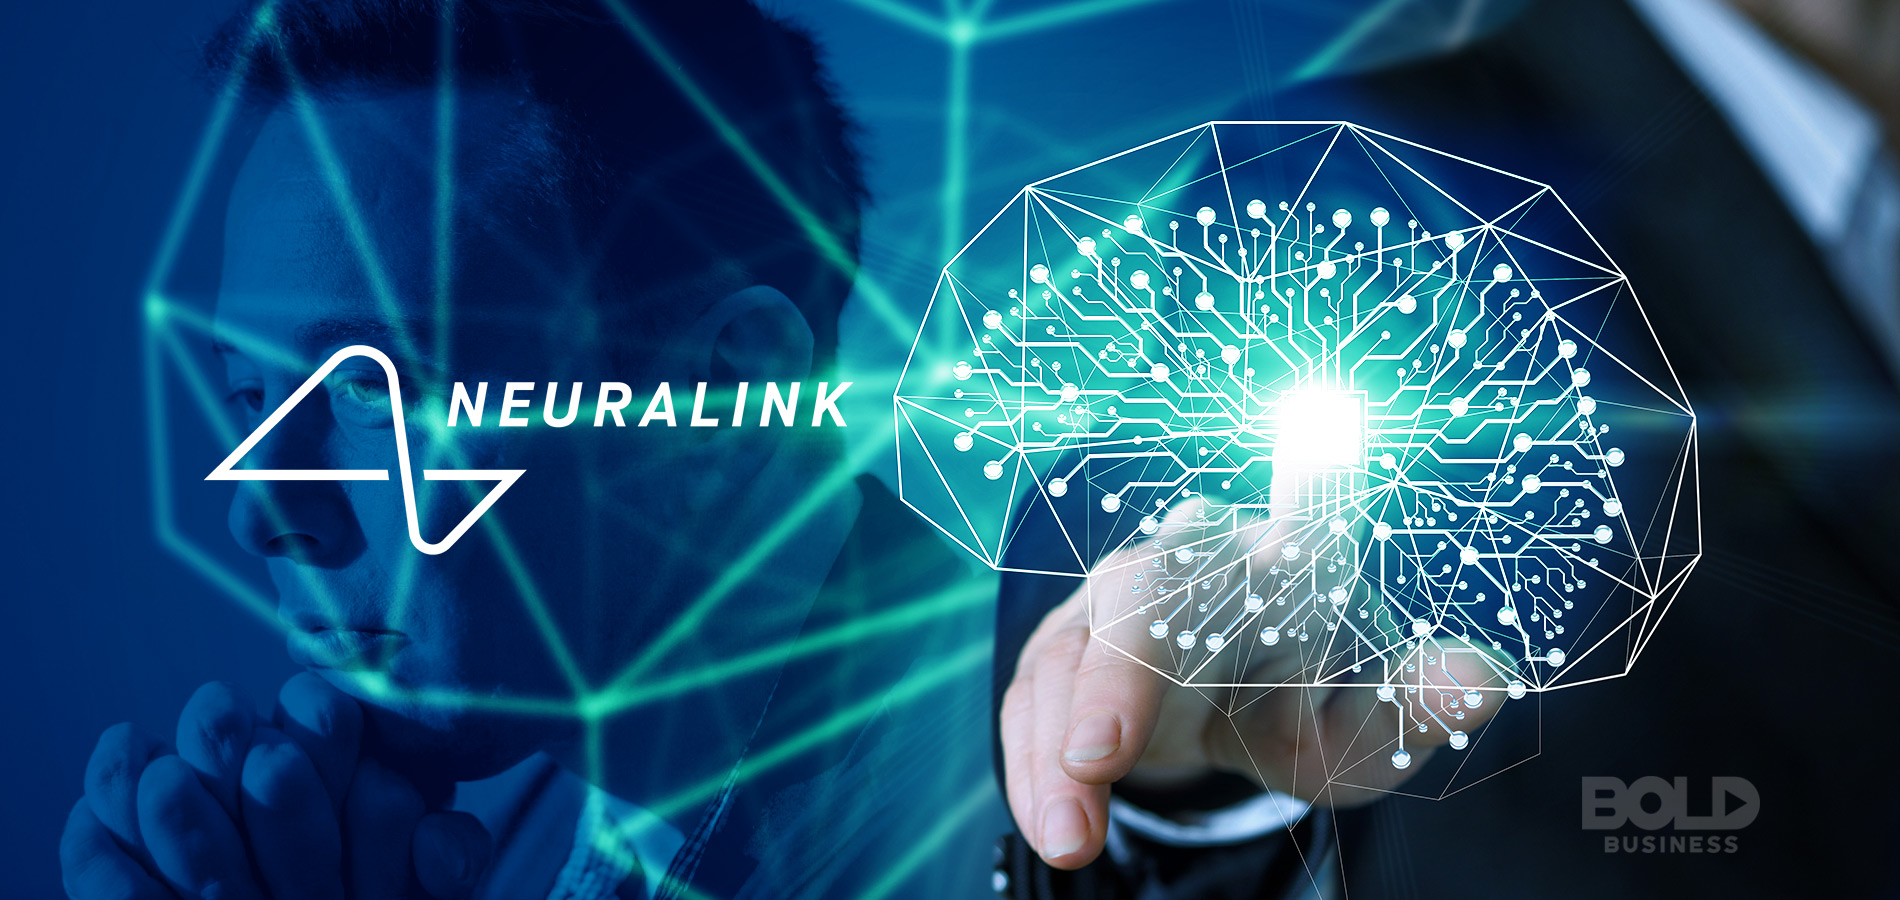 Afraid of AI's? Elon Musk's Neuralink has the answer: join them.